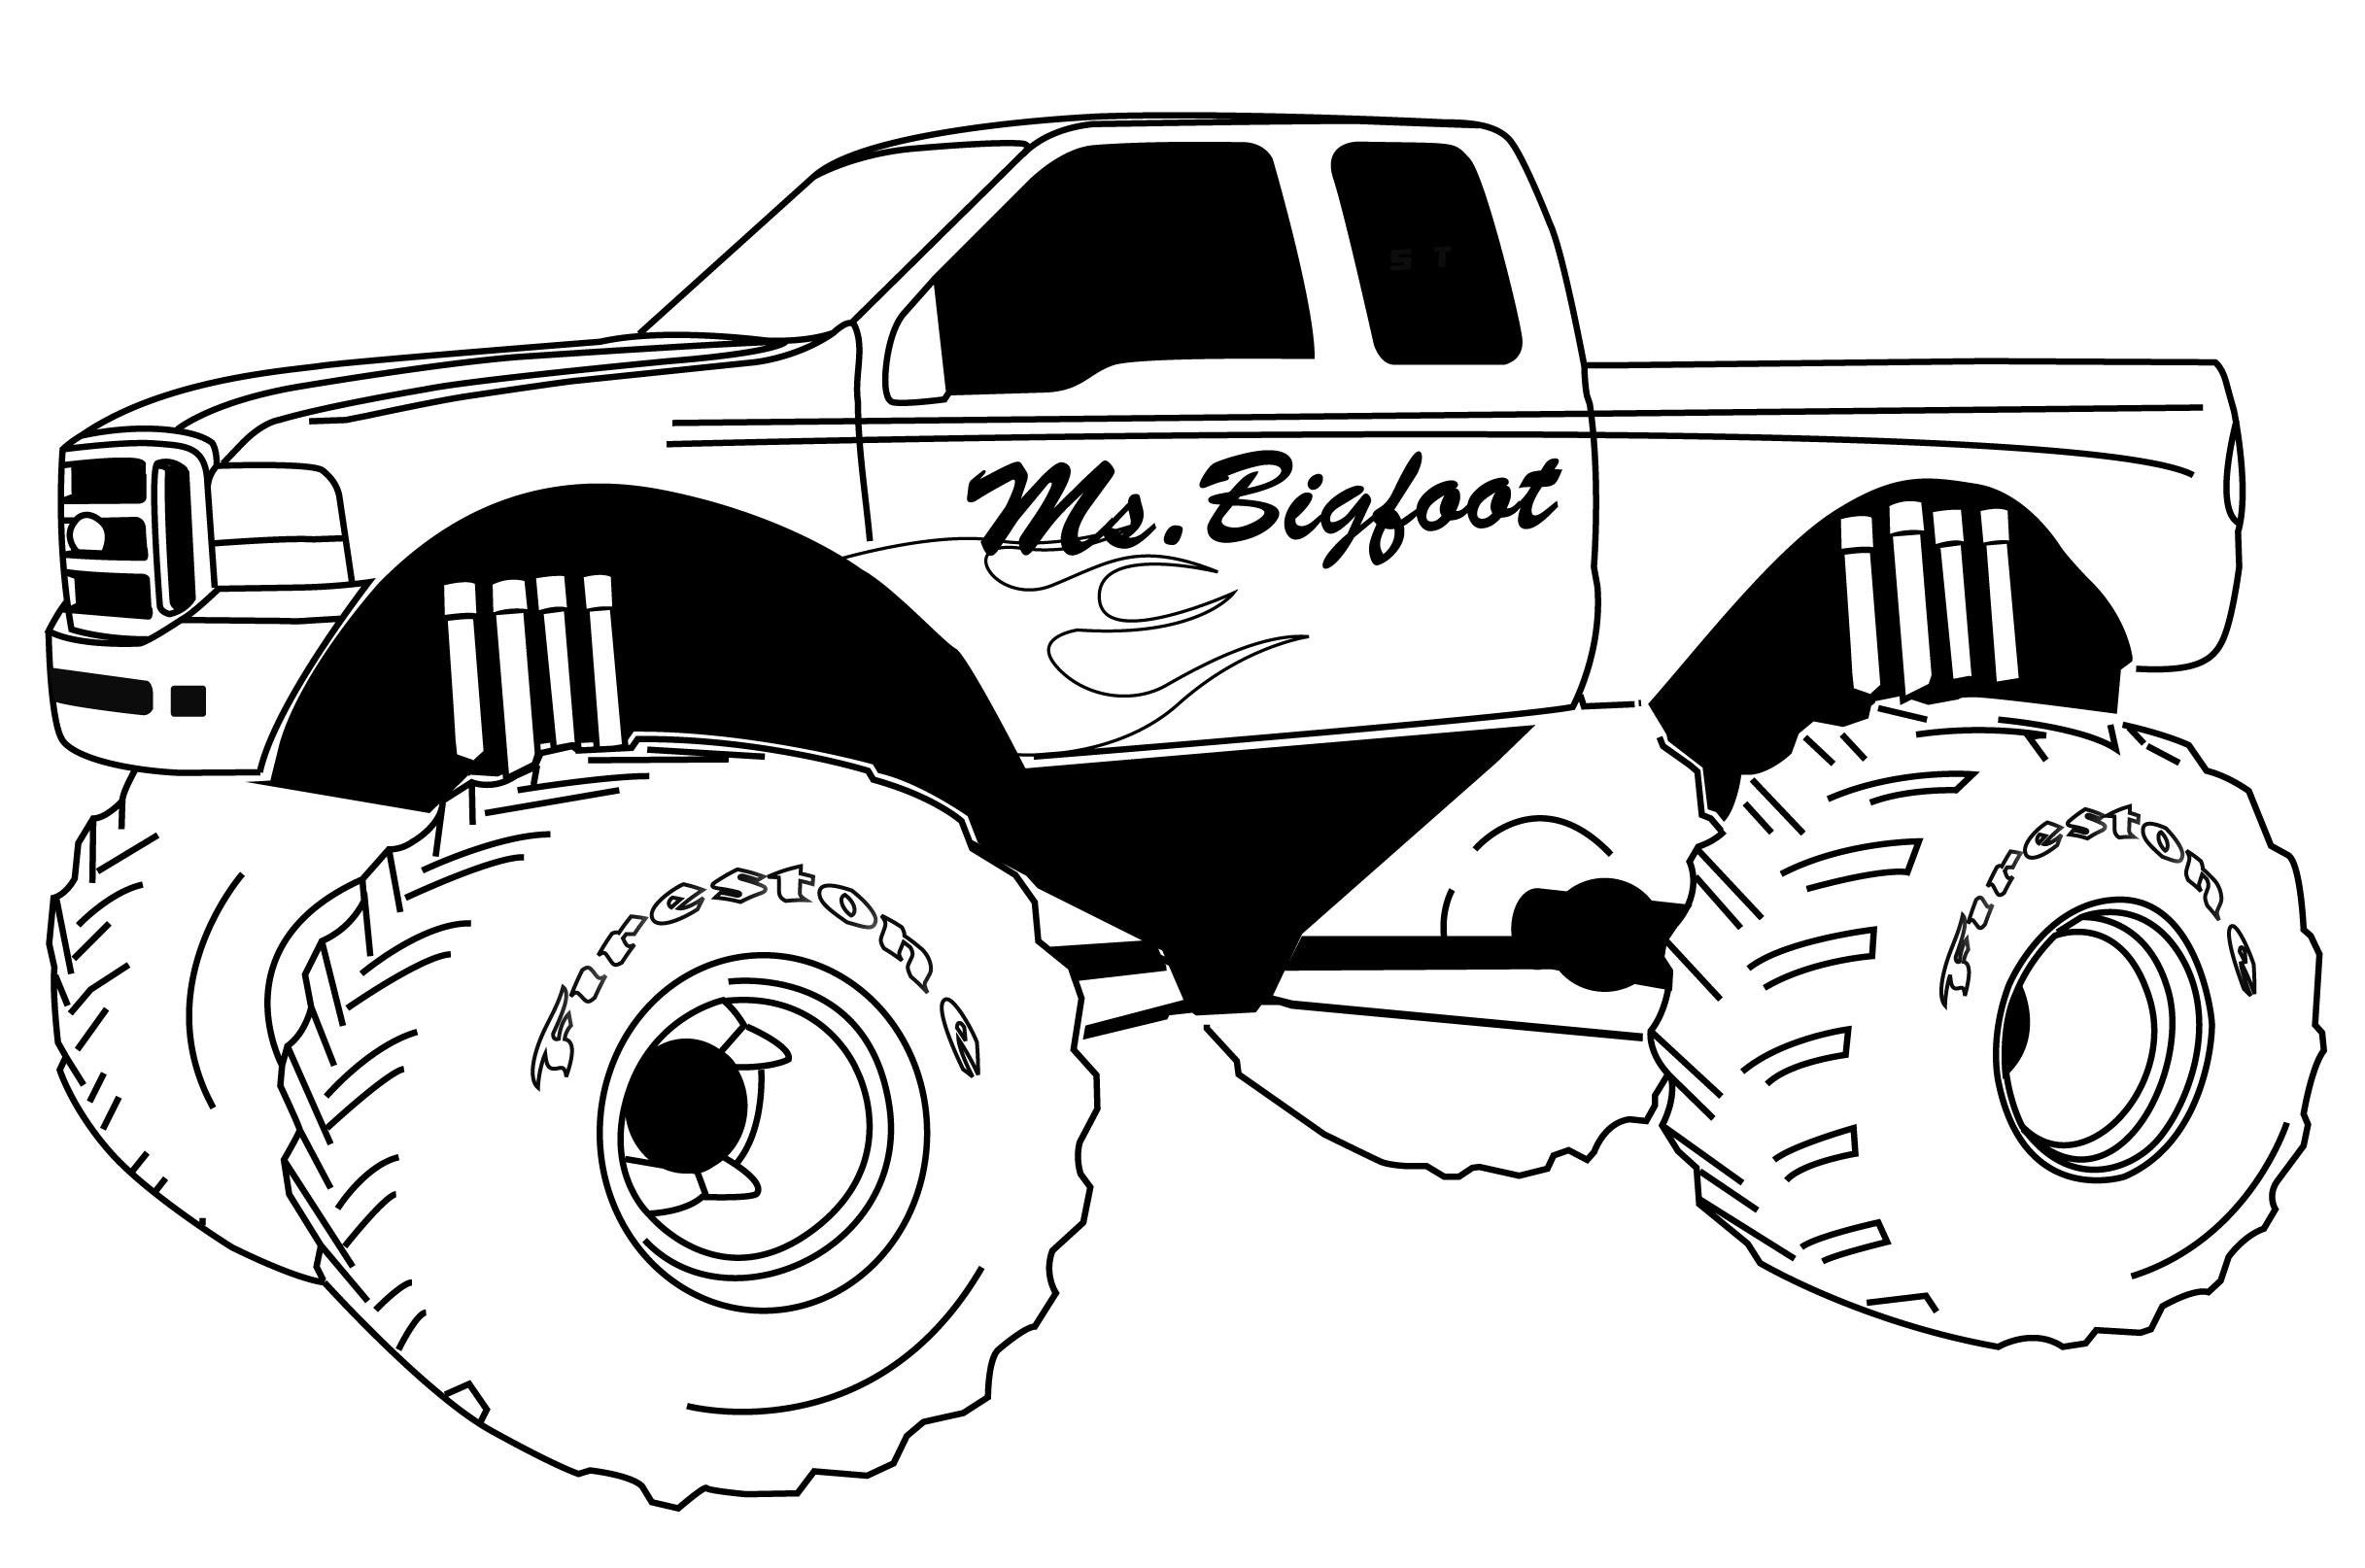 coloring truck pictures mack truck coloring pages at getcoloringscom free coloring truck pictures